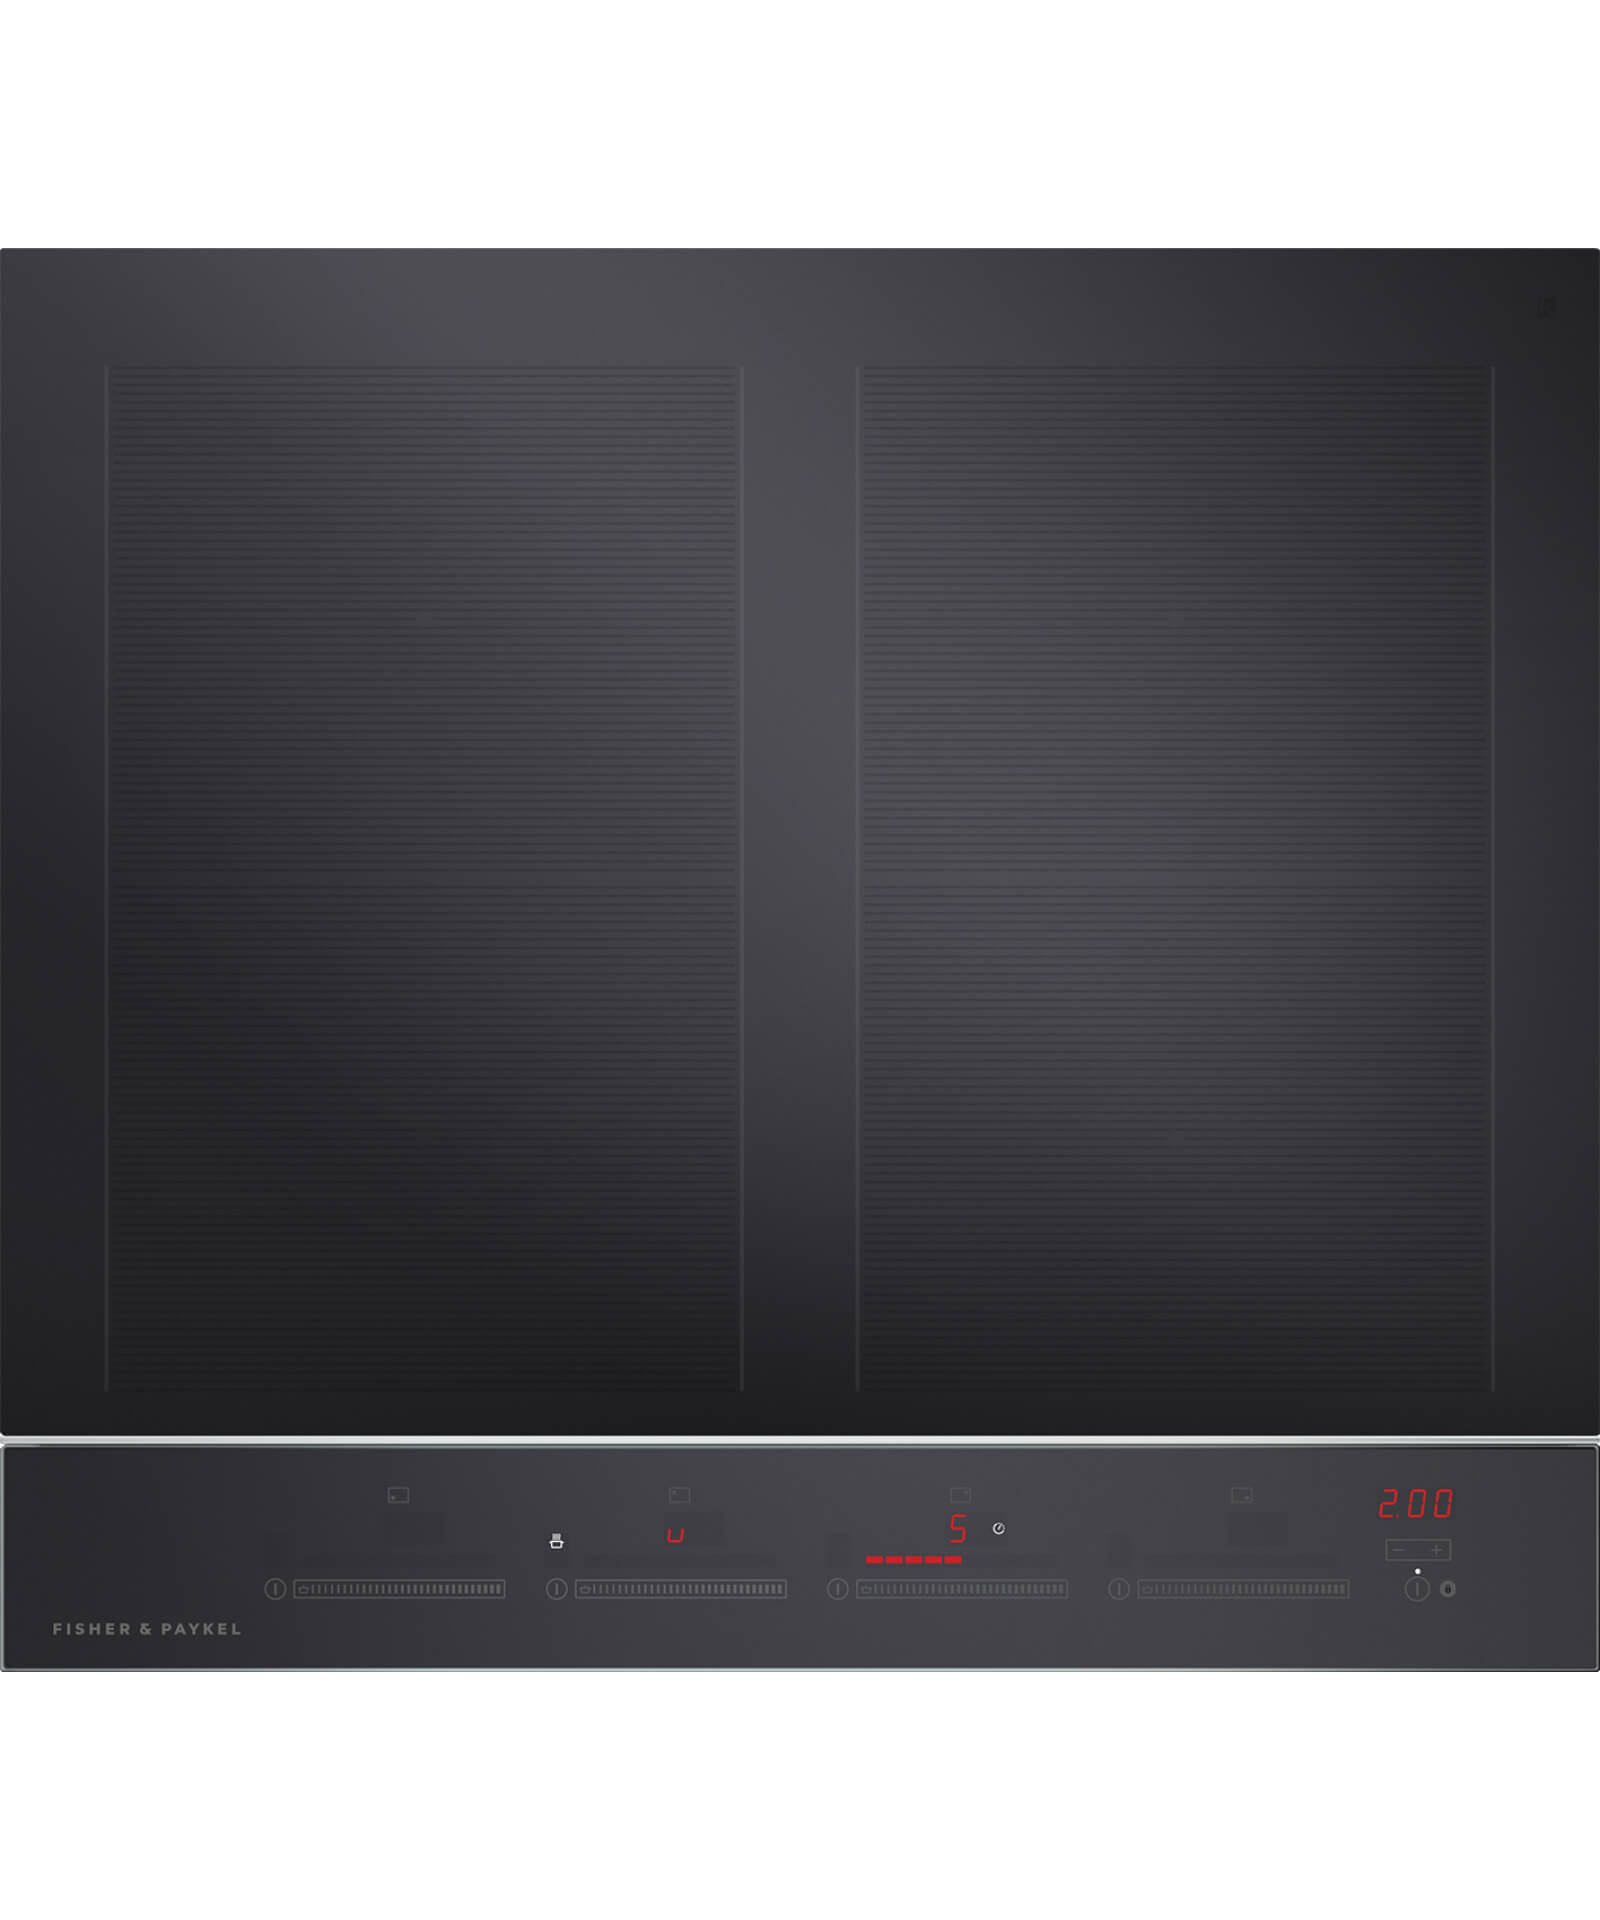 Induction Cooktop 24